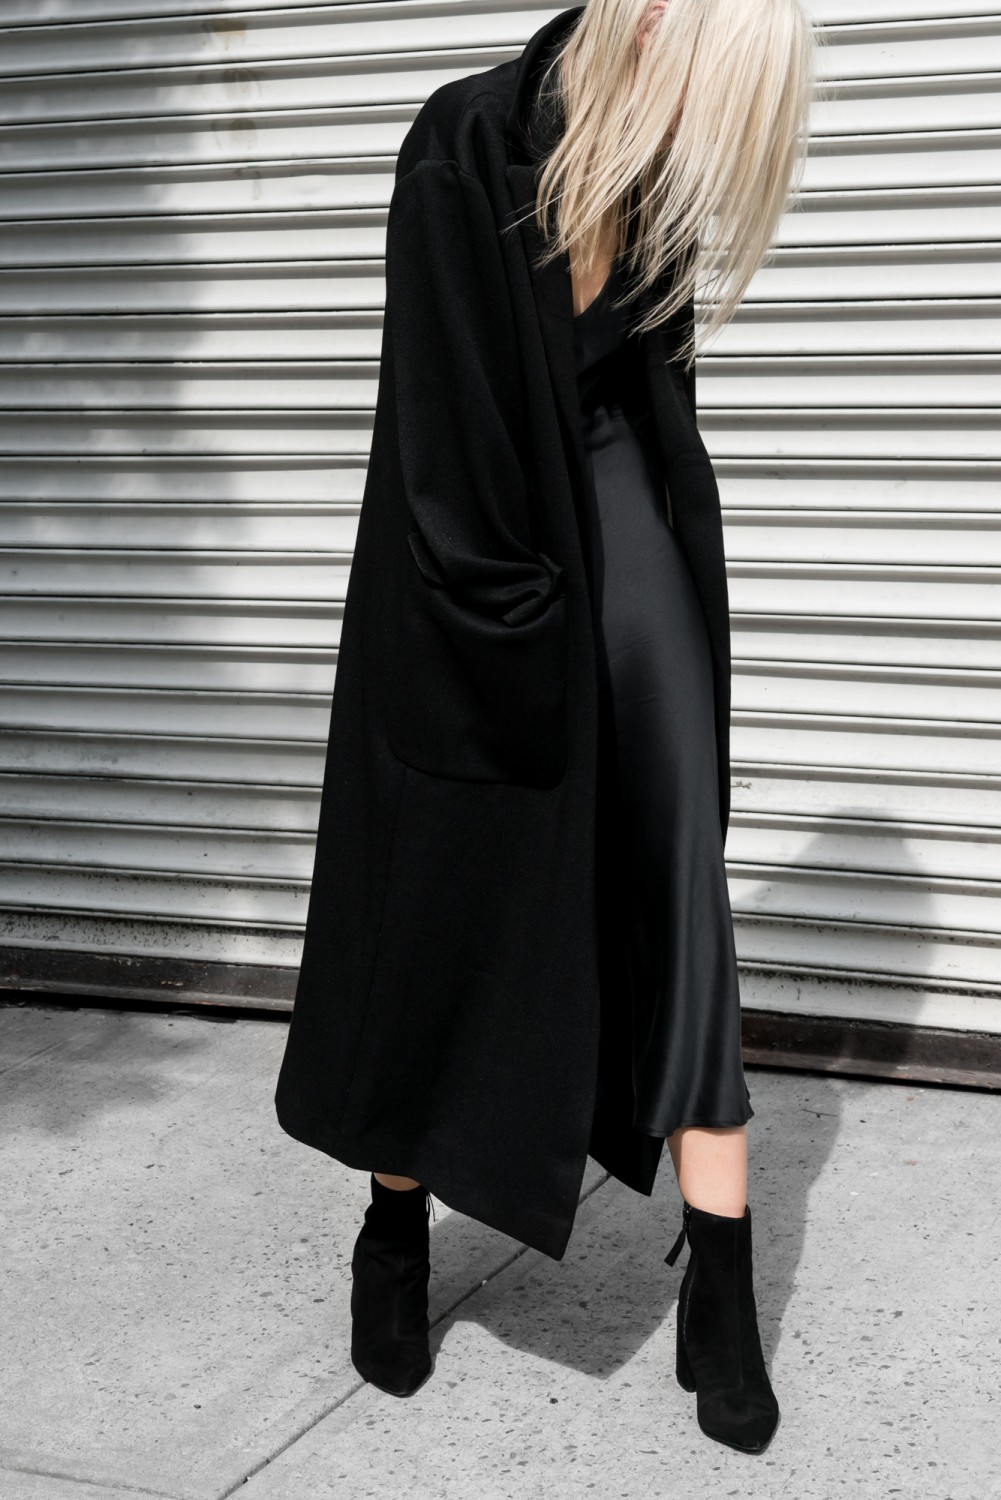 figtny.com | Satin + Suede + Slouchy Dusters